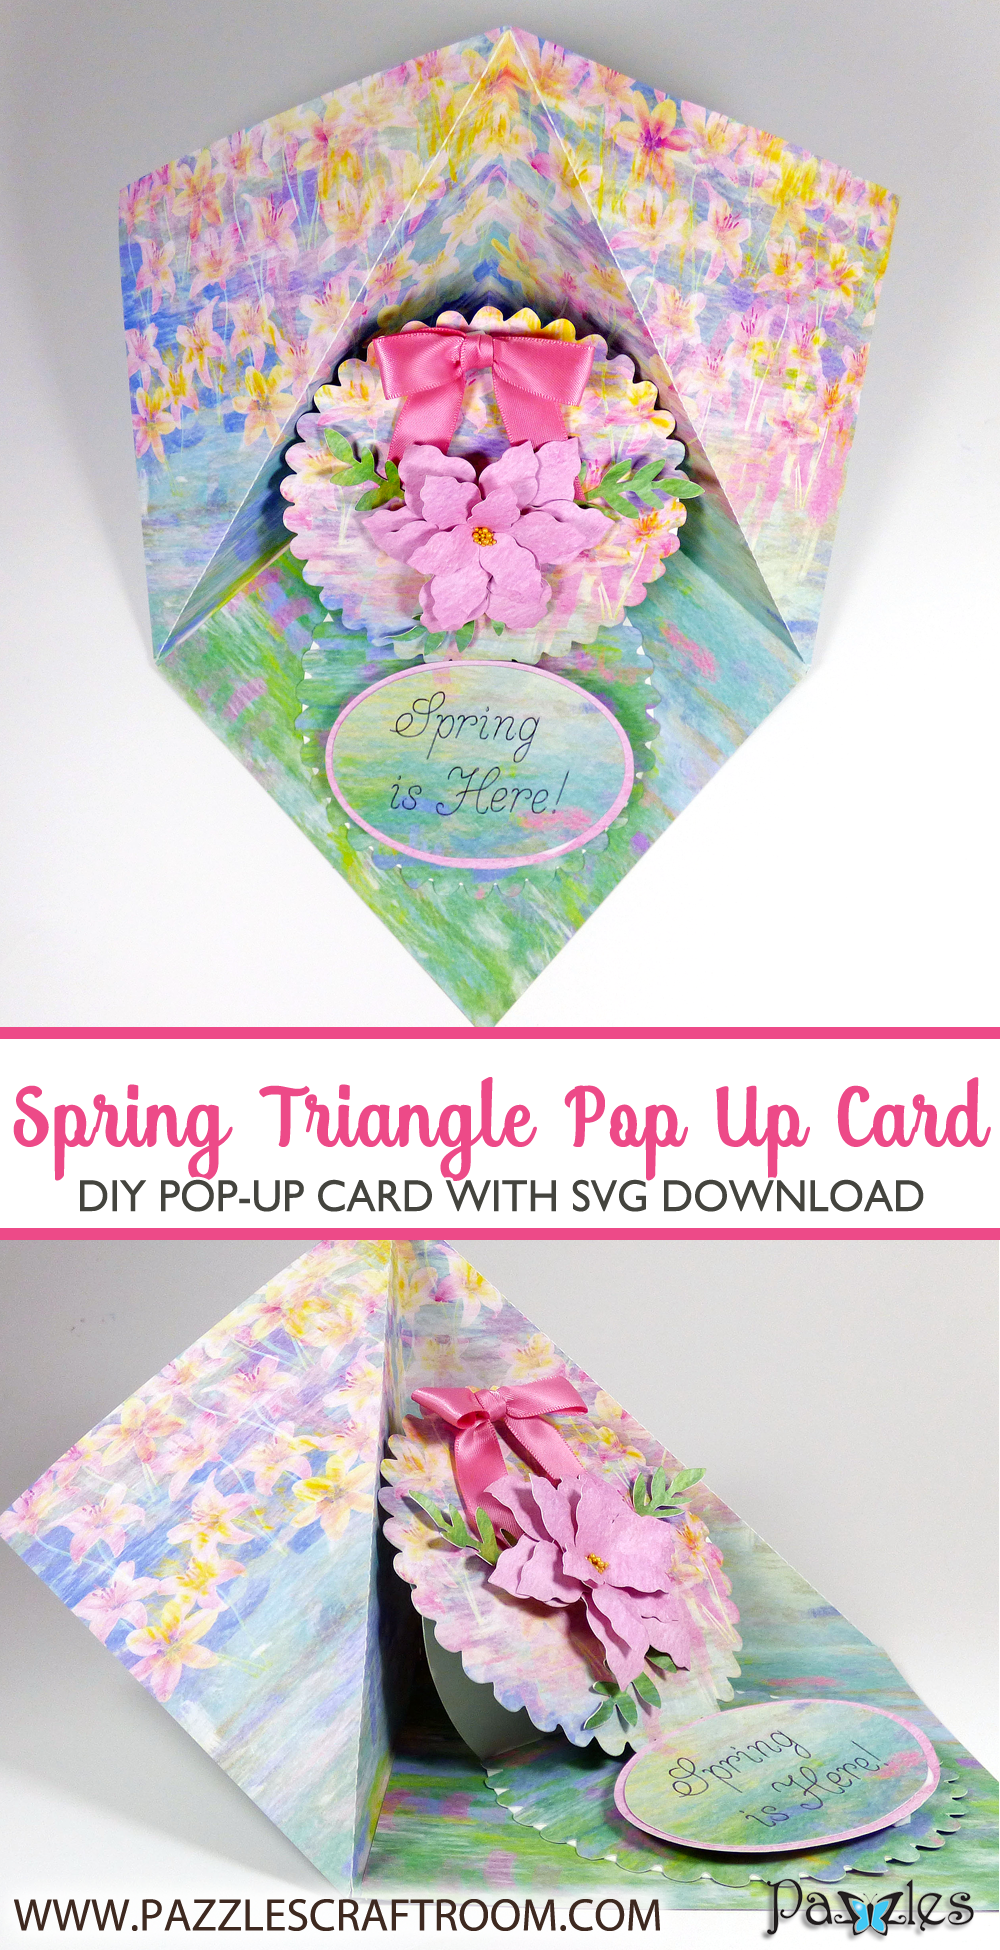 DIY Pazzles Spring Triangle Pop Up Card with instant SVG download. Compatible with all major electronic cutters including Pazzles Inspiration, Cricut, and Silhouette Cameo. Design by Julie Flanagan.